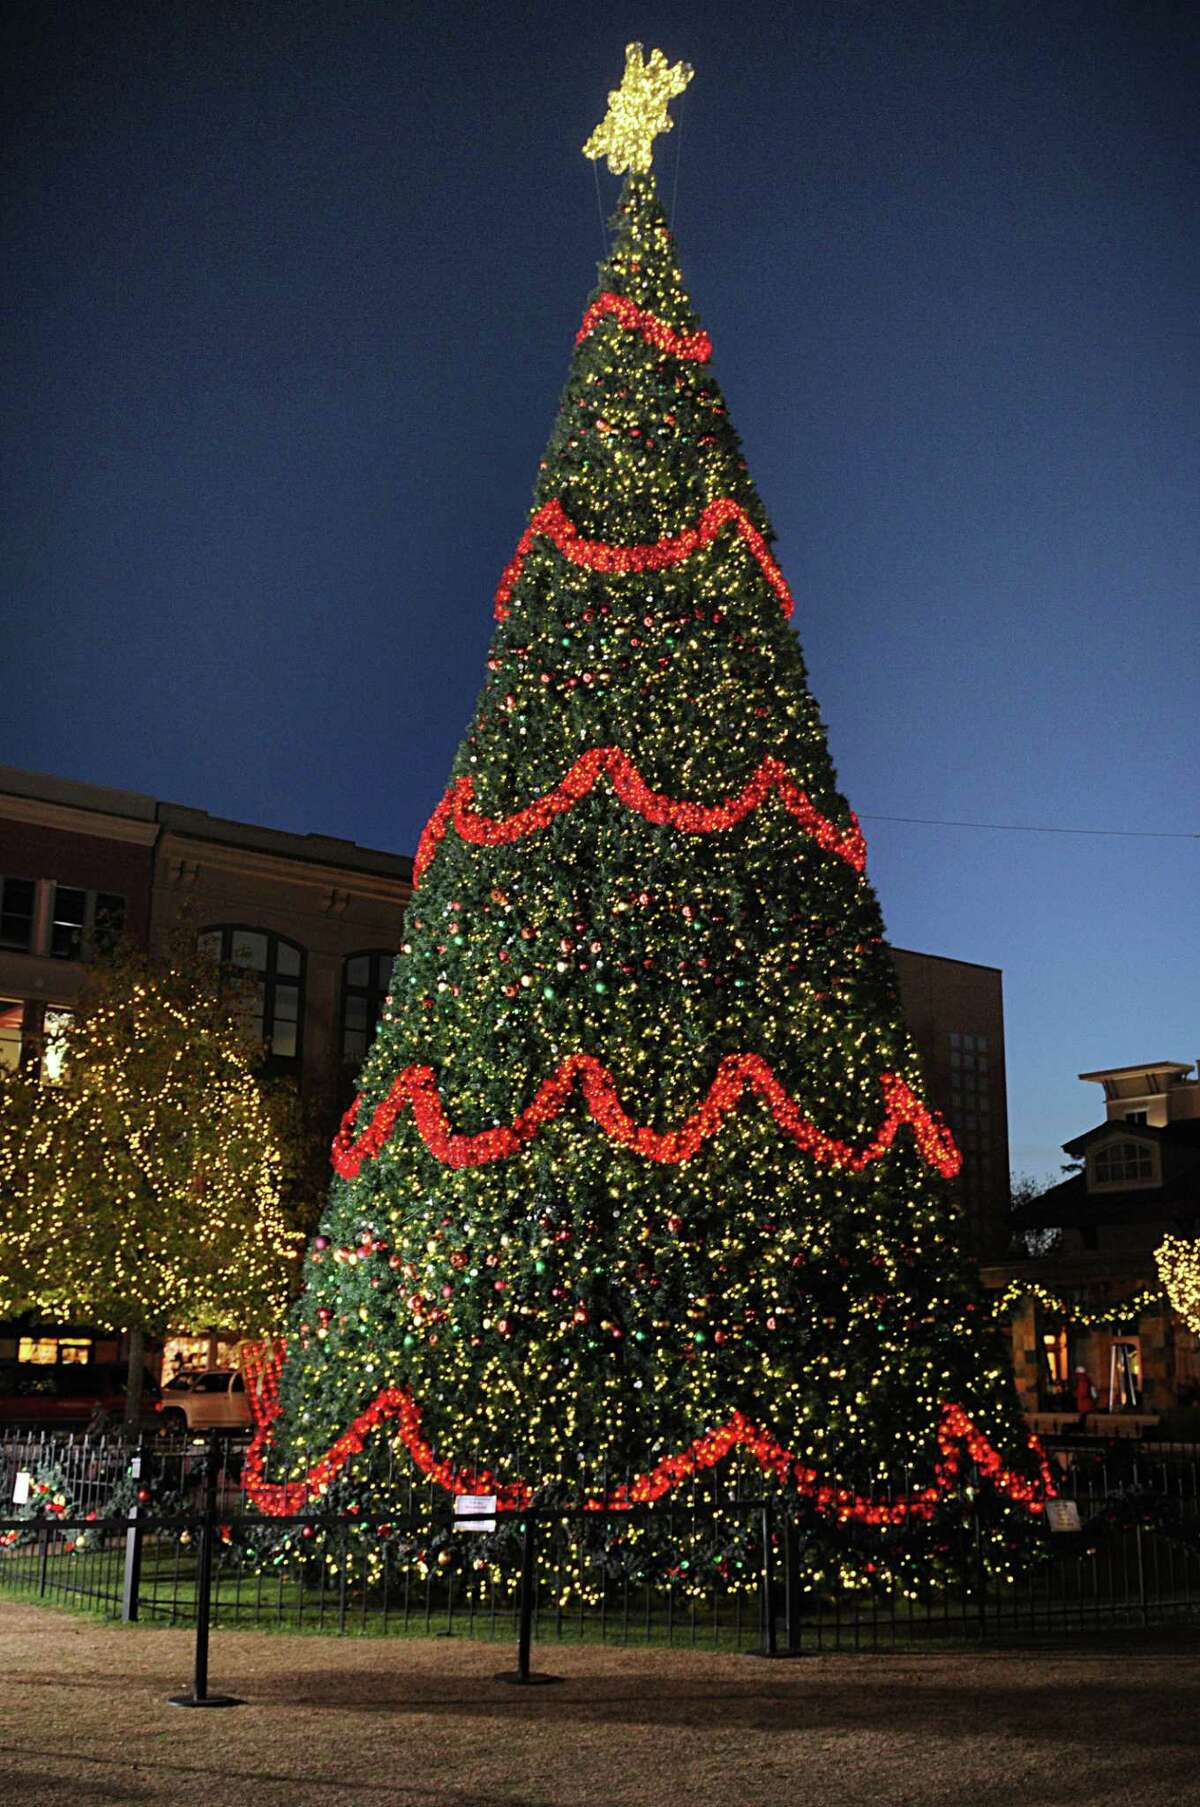 A full line-up of Christmas fun is on tap at Market Street The Woodlands for the 2020 holiday season.